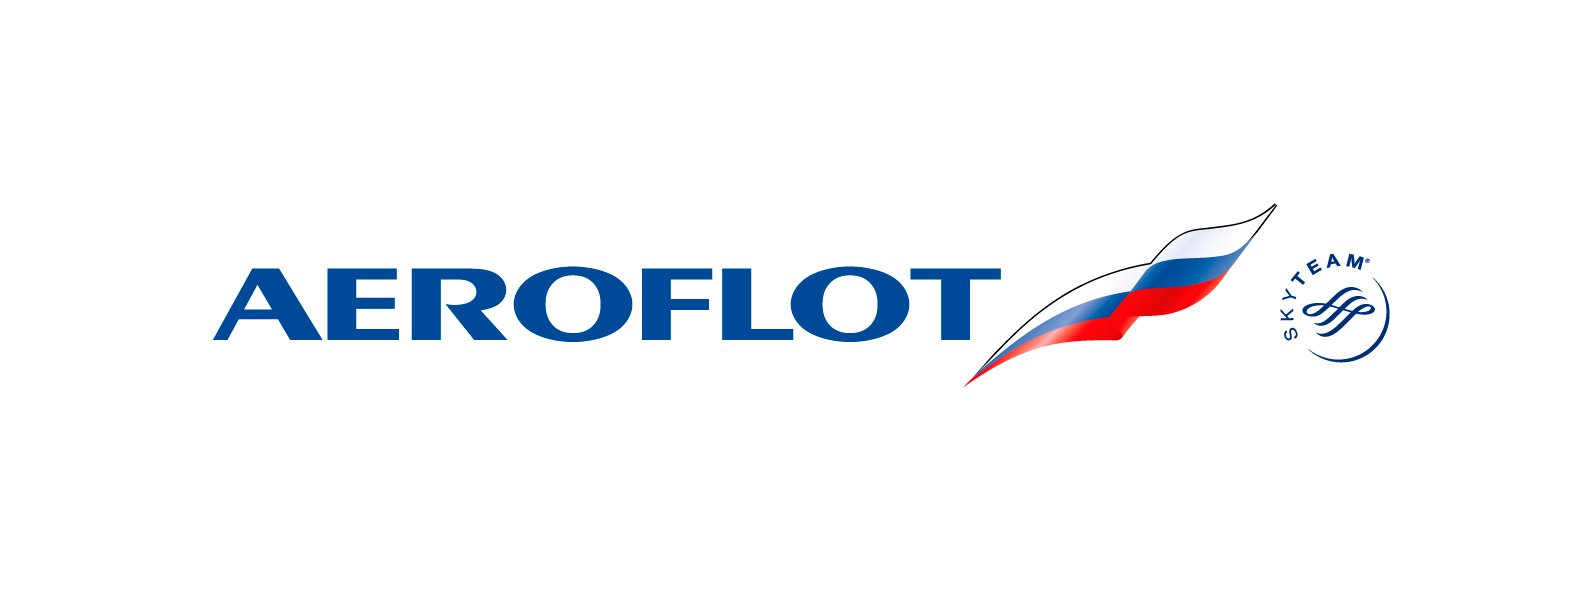 Download the Aeroflot logo - Aeroflot Logo PNG